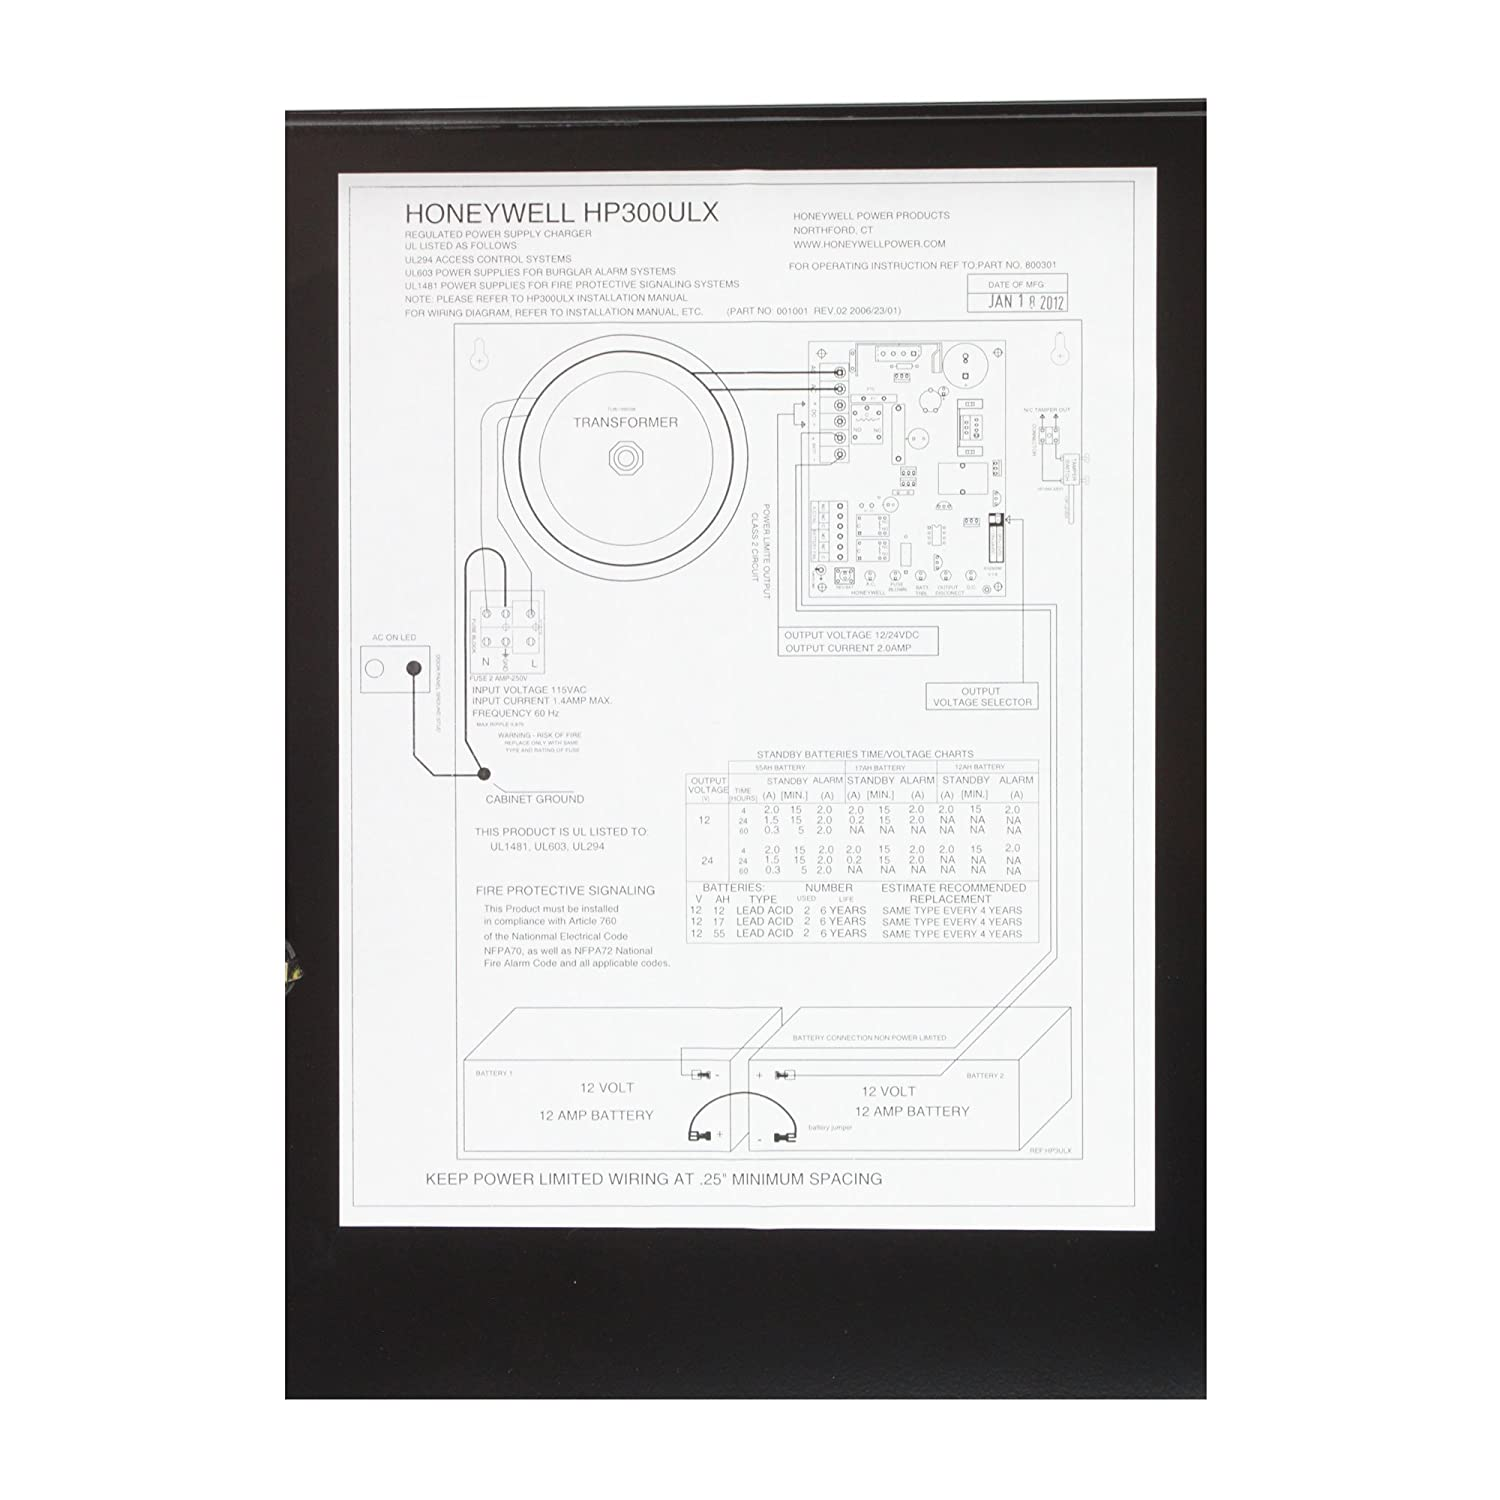 Honeywell Hp300ulx Access Control Power Supply Charger Ct Cabinet Wiring Diagram 12 24 Vdc 25 Amp Camera Photo